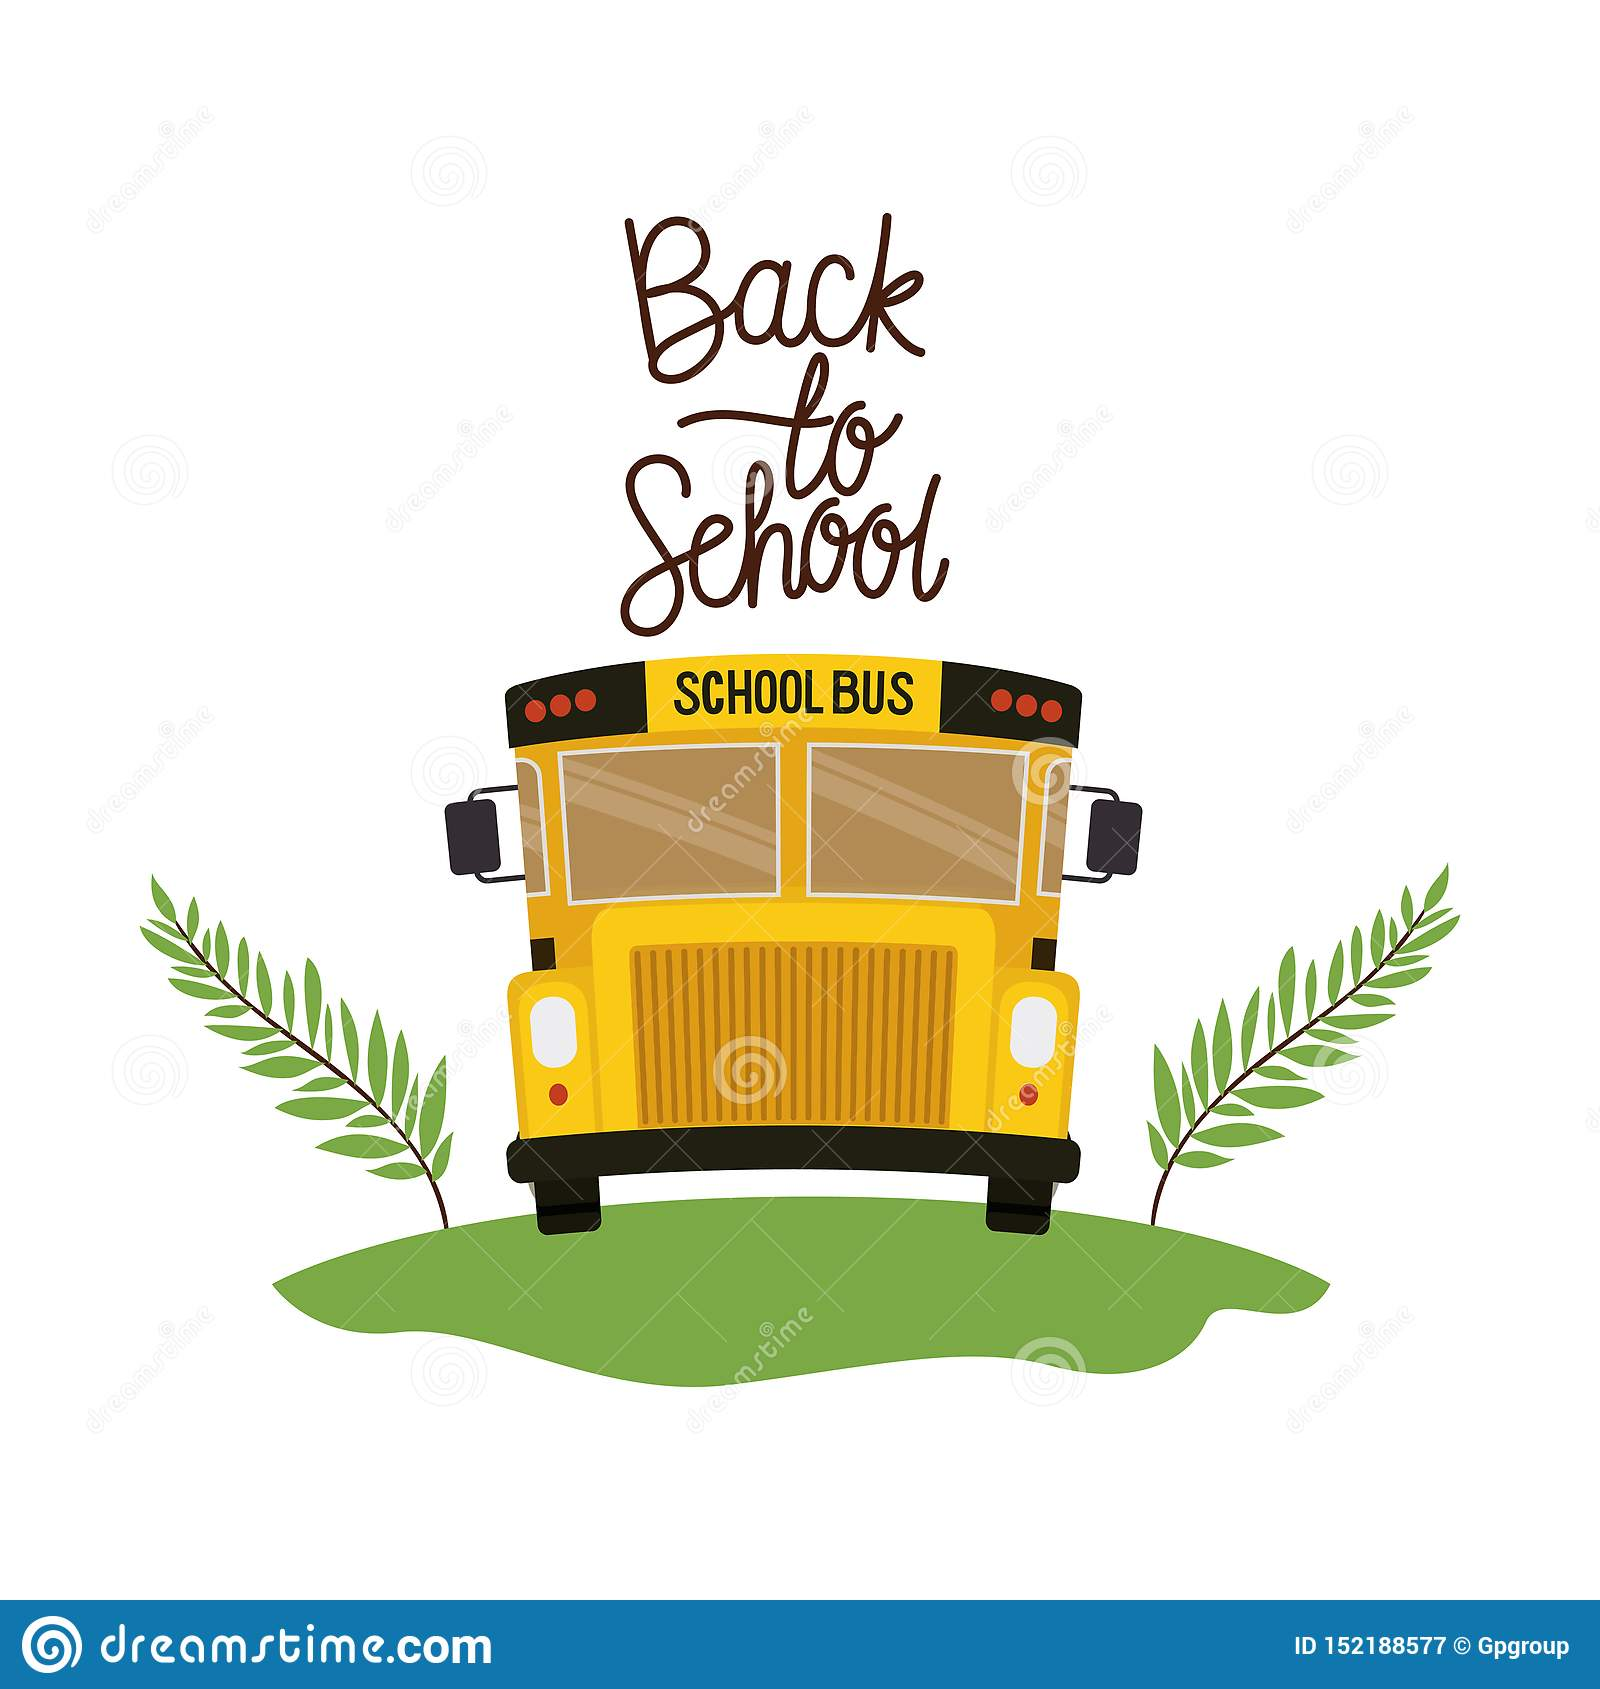 School bus with back to school label